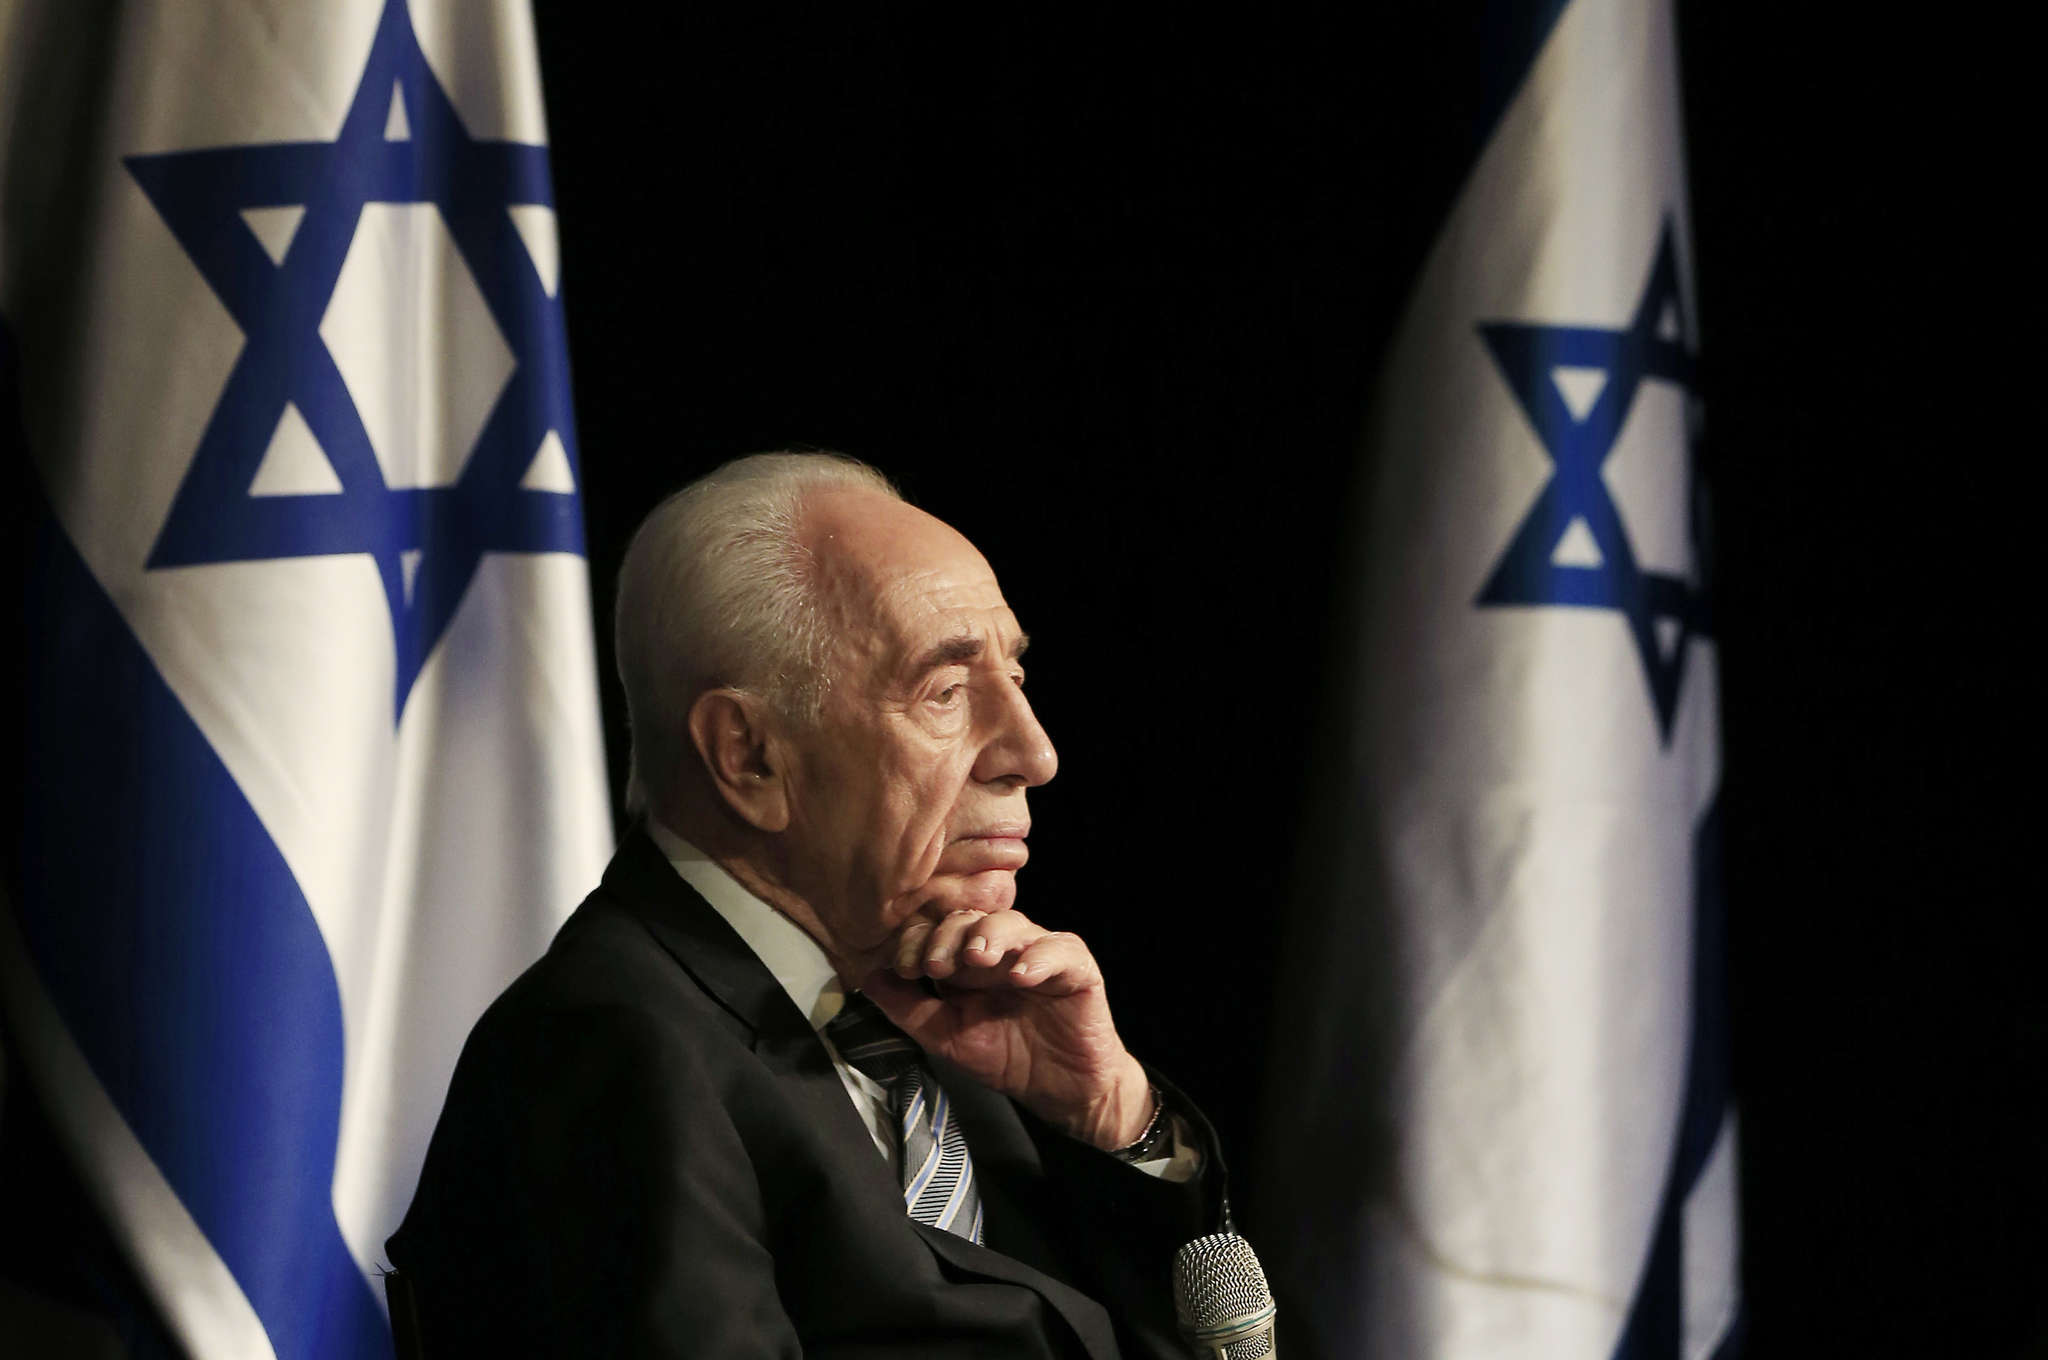 Shimon Peres during a visit to the southern Israeli town of Sderot in 2014. The former prime minister and president died last week after a stroke.